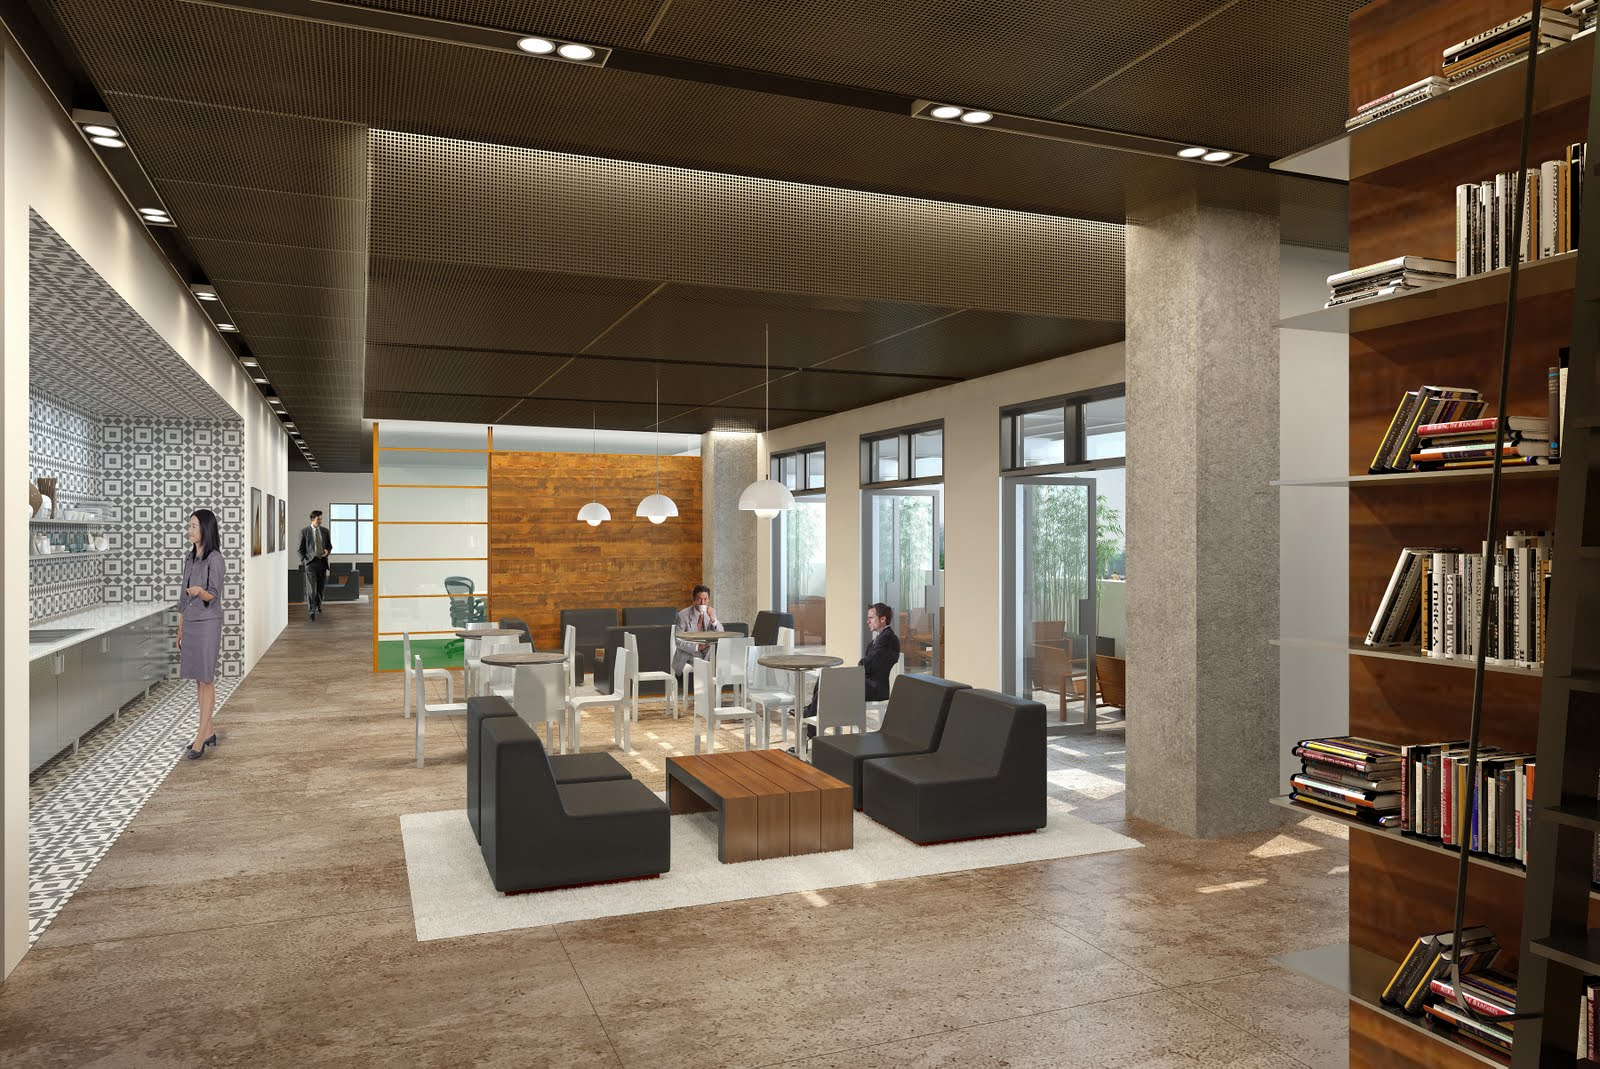 Shubin donaldson gk lounge renderings for Lounge interior ideas